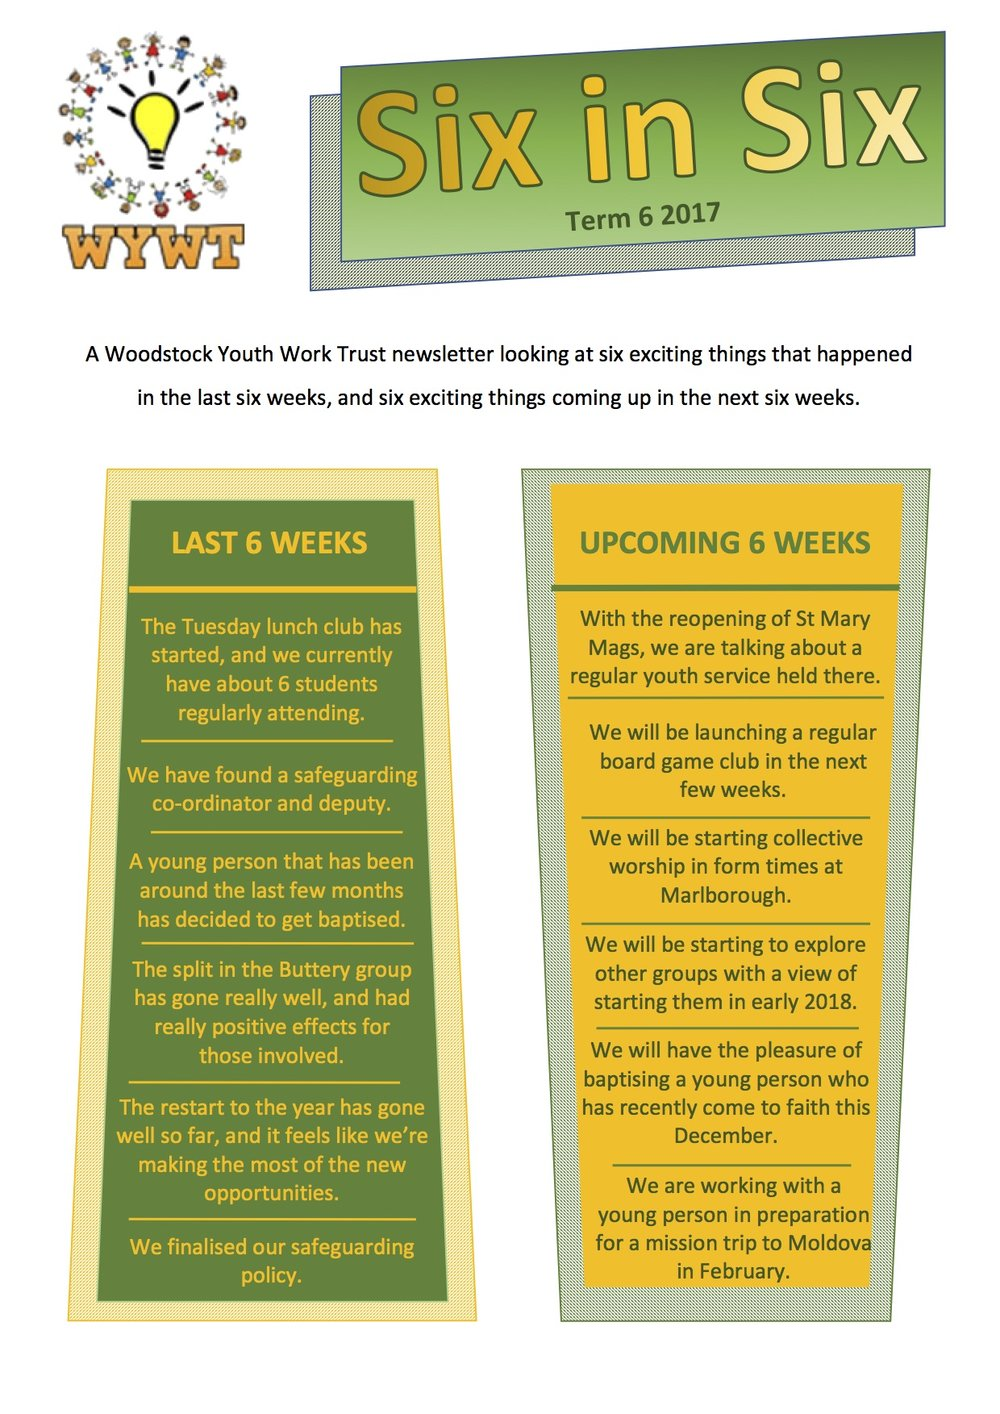 Woodstock youth Christian newsletter